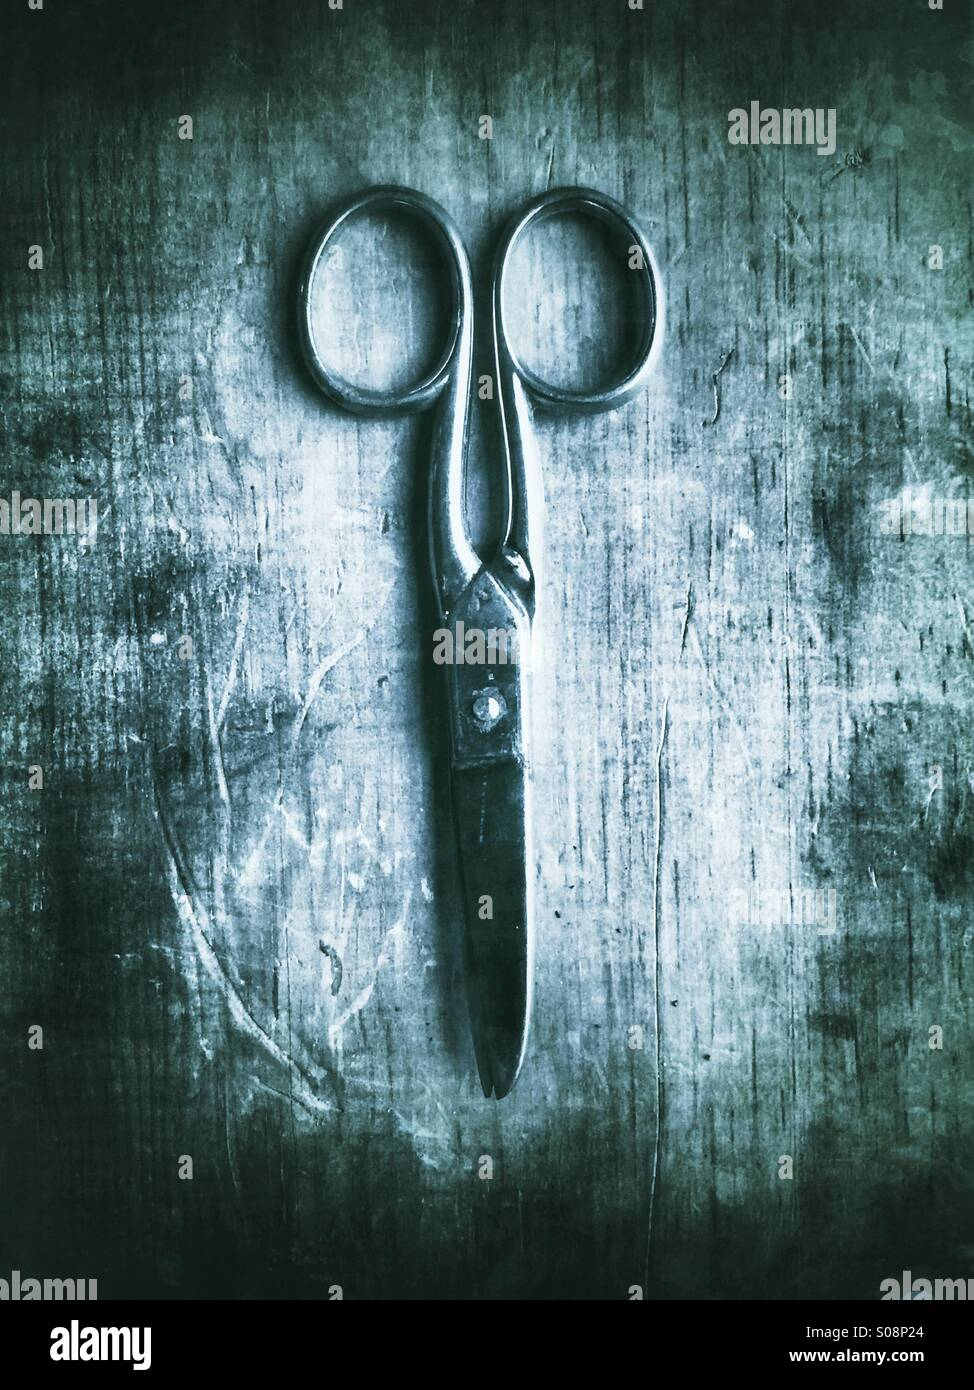 Old pair of scissors - Stock Image